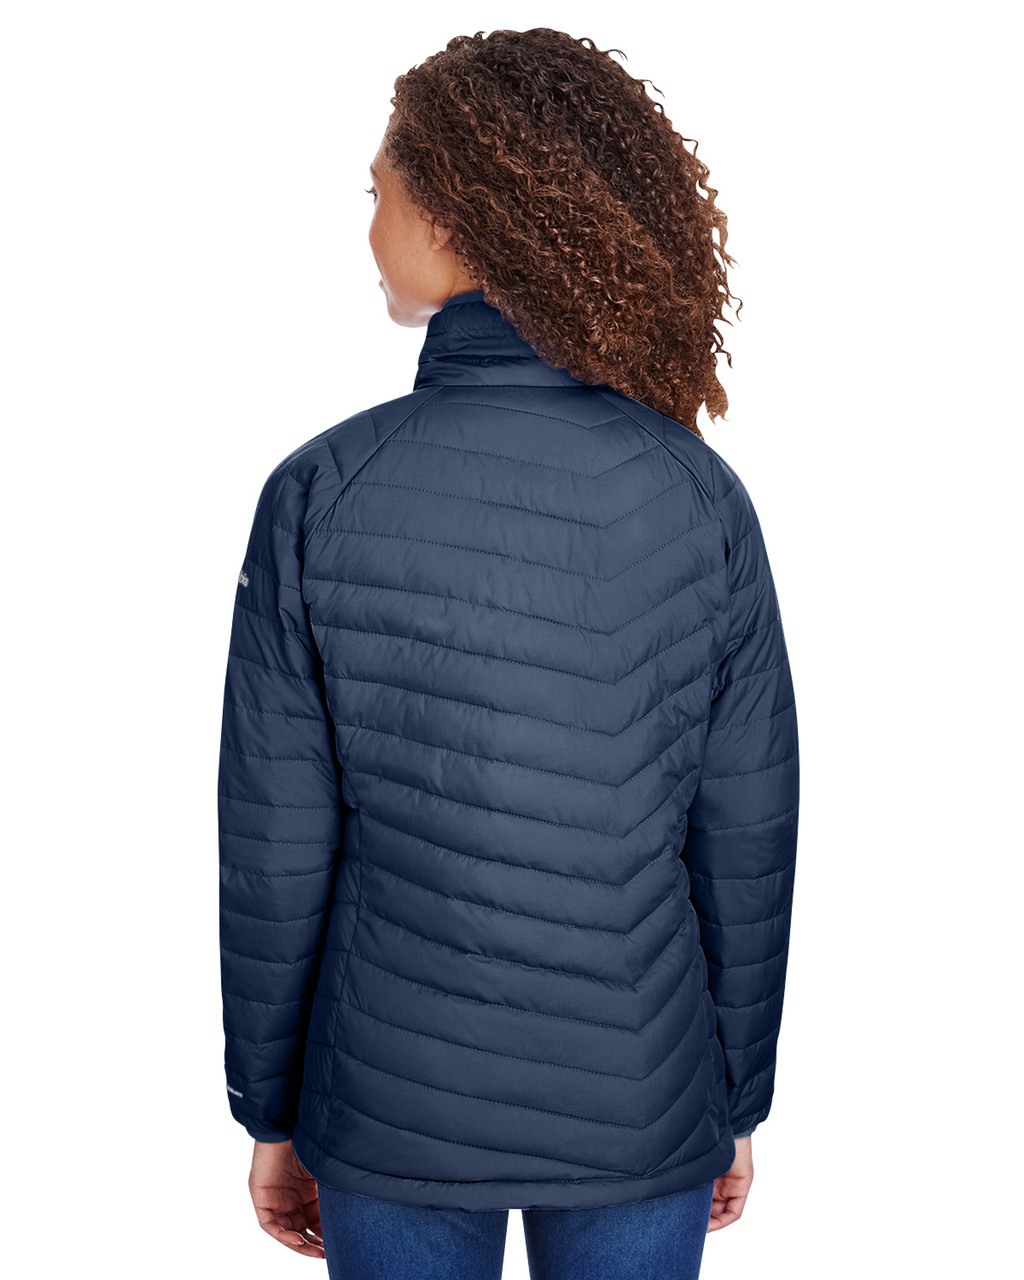 Nocturnal - Back, 1699061 Columbia Ladies' Powder Lite™ Jacket | Blankclothing.ca